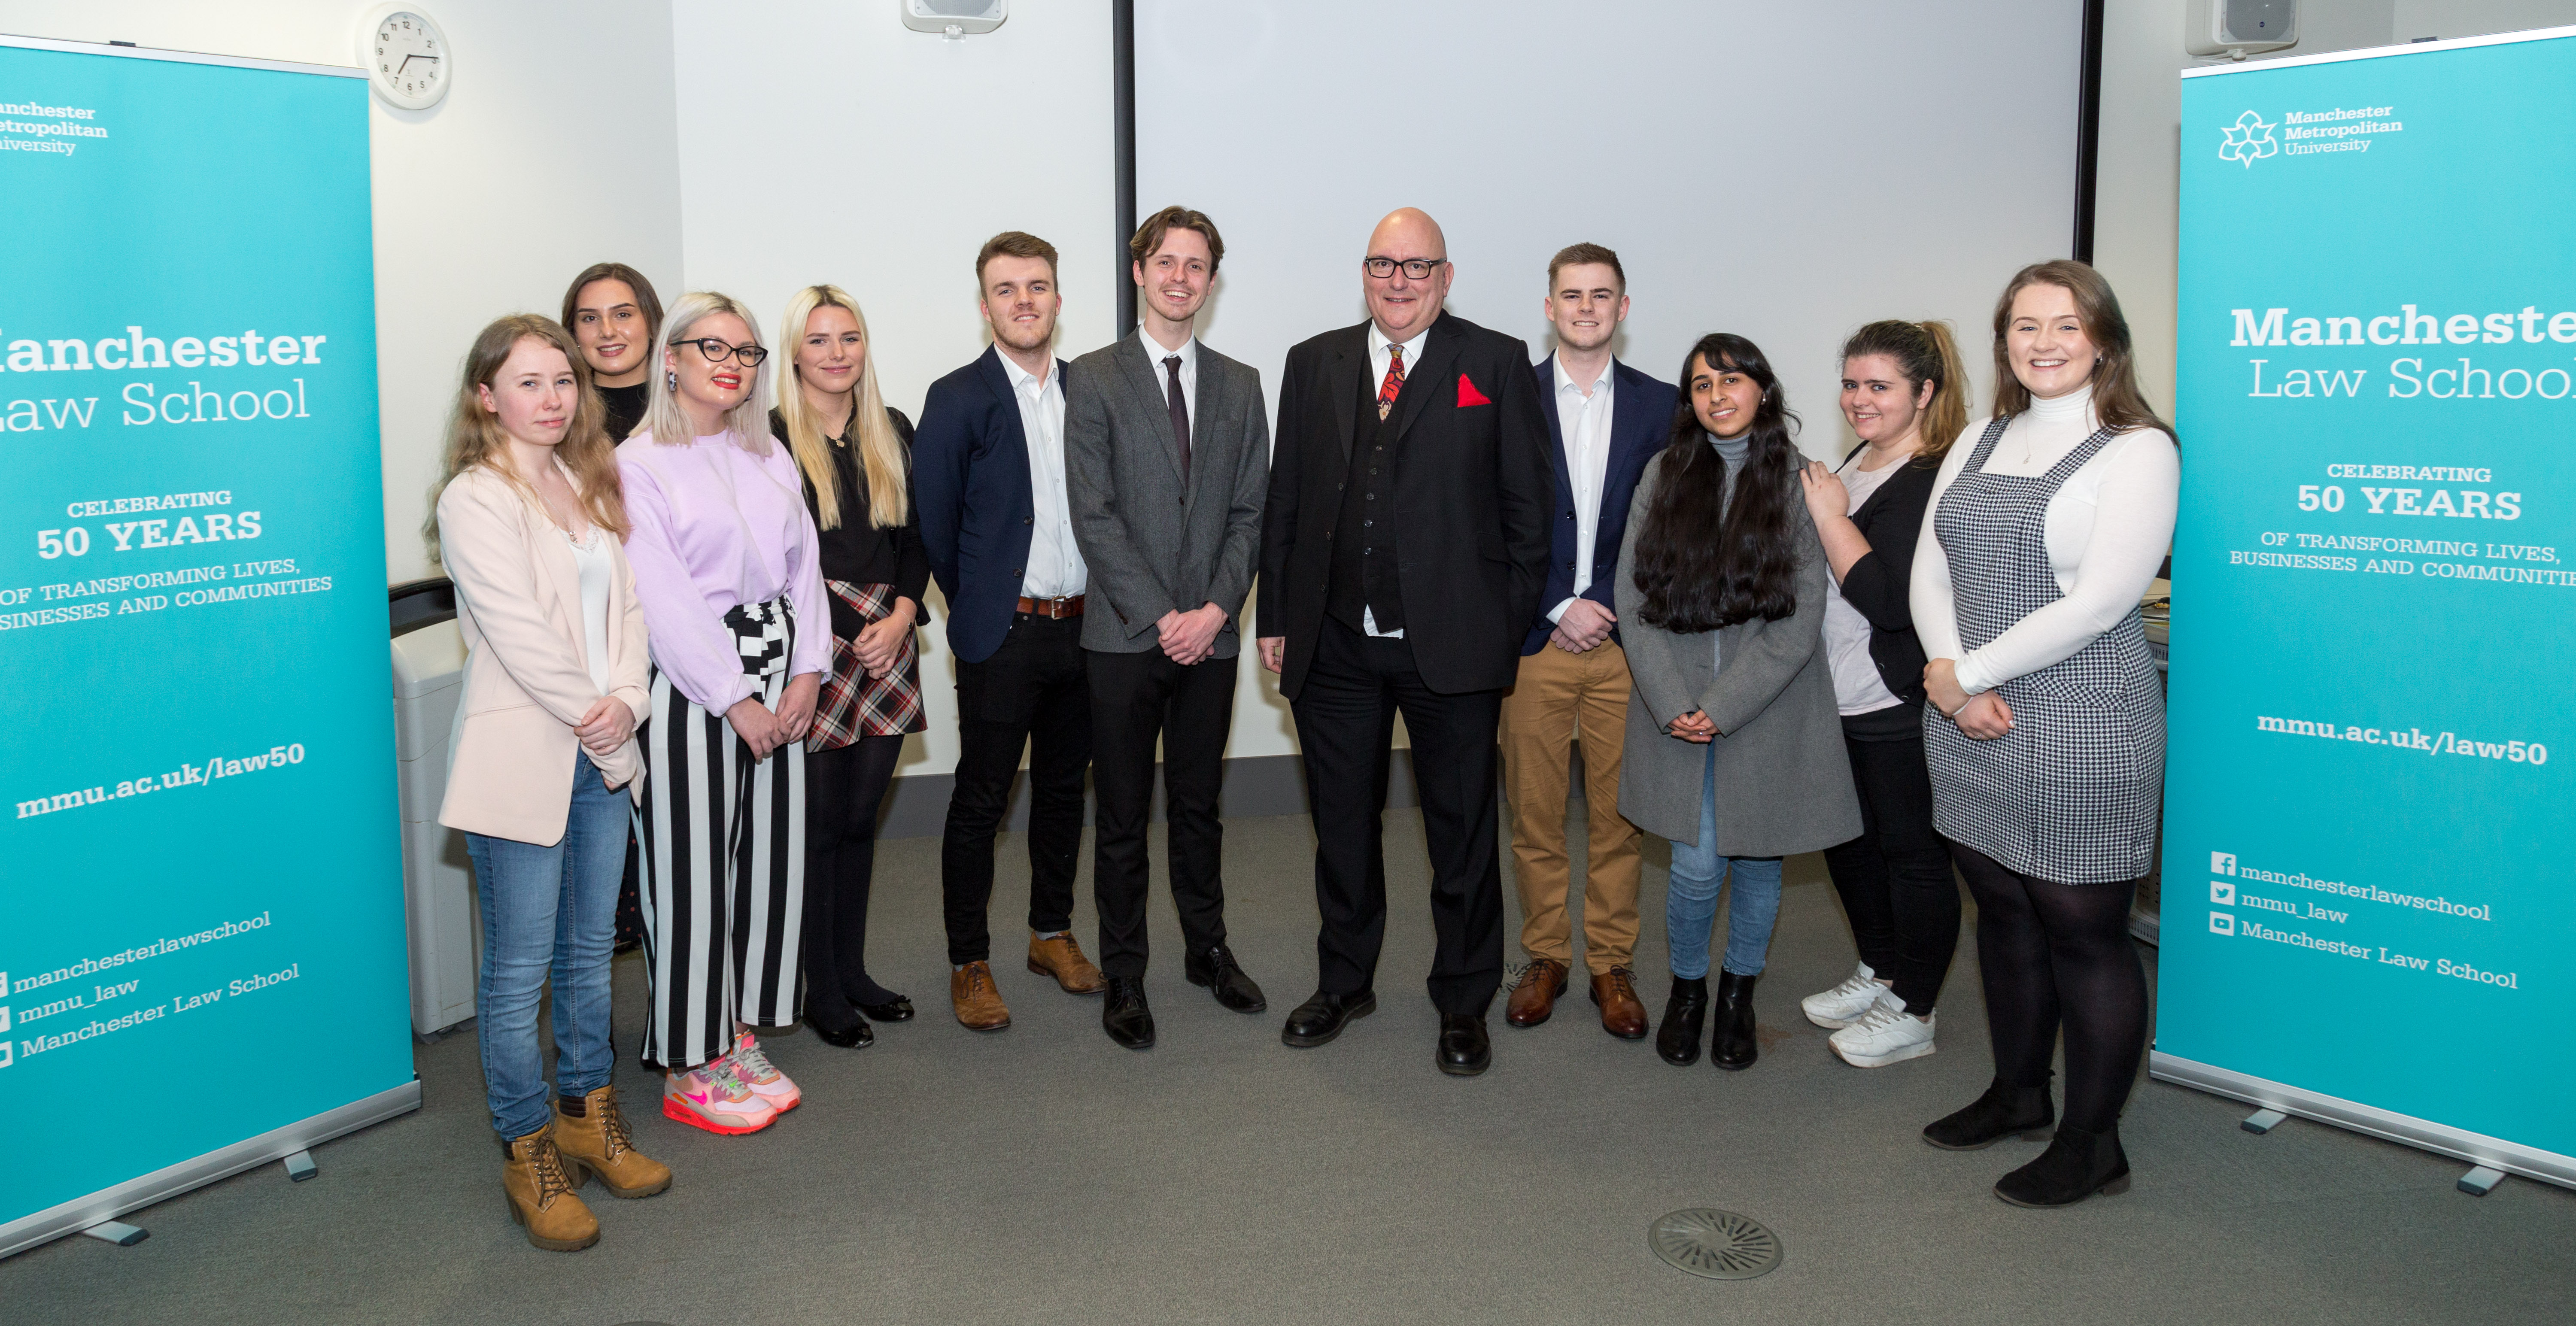 Mr Justice Dove with Manchester Law School students